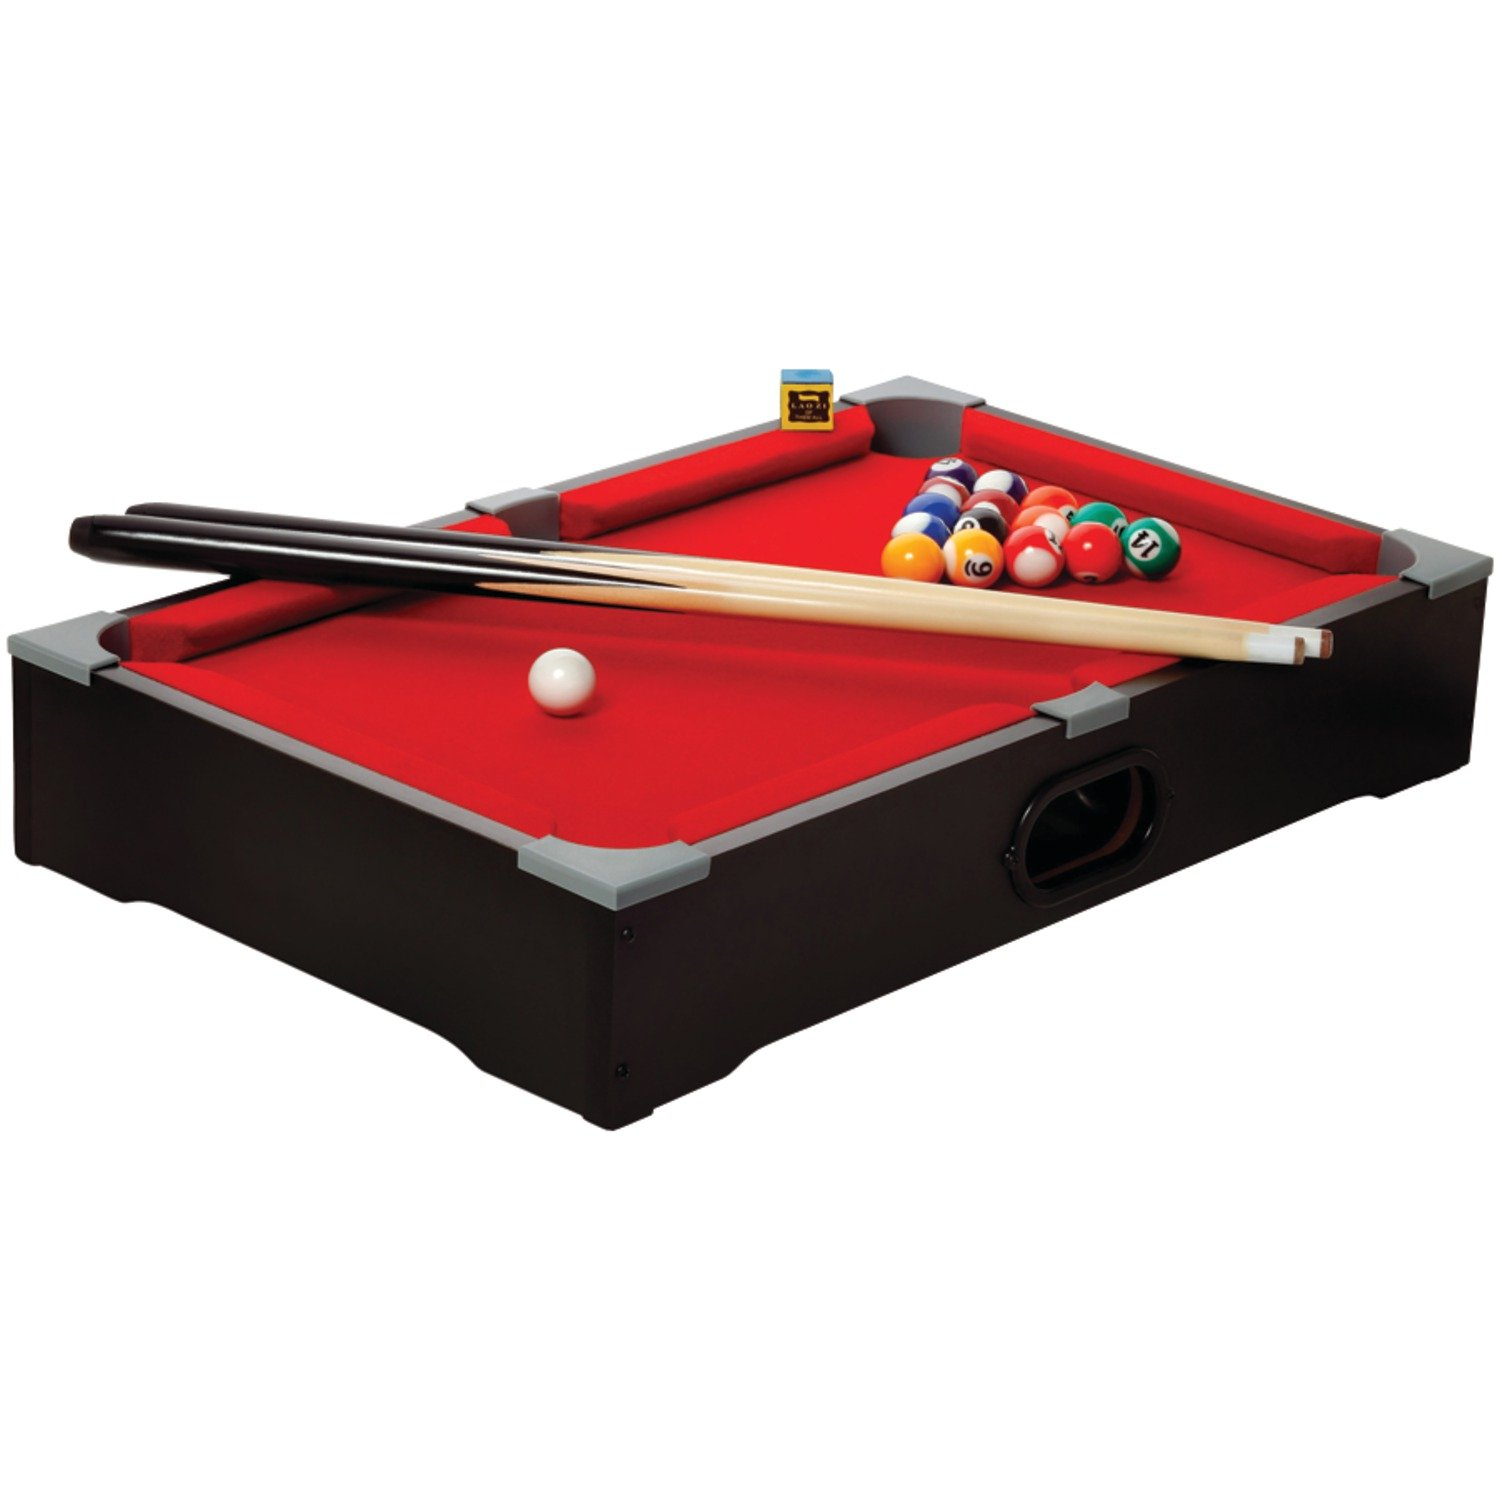 Petra Industries (sports) ESPN Pool Tabletop by Petra Industries (sports)